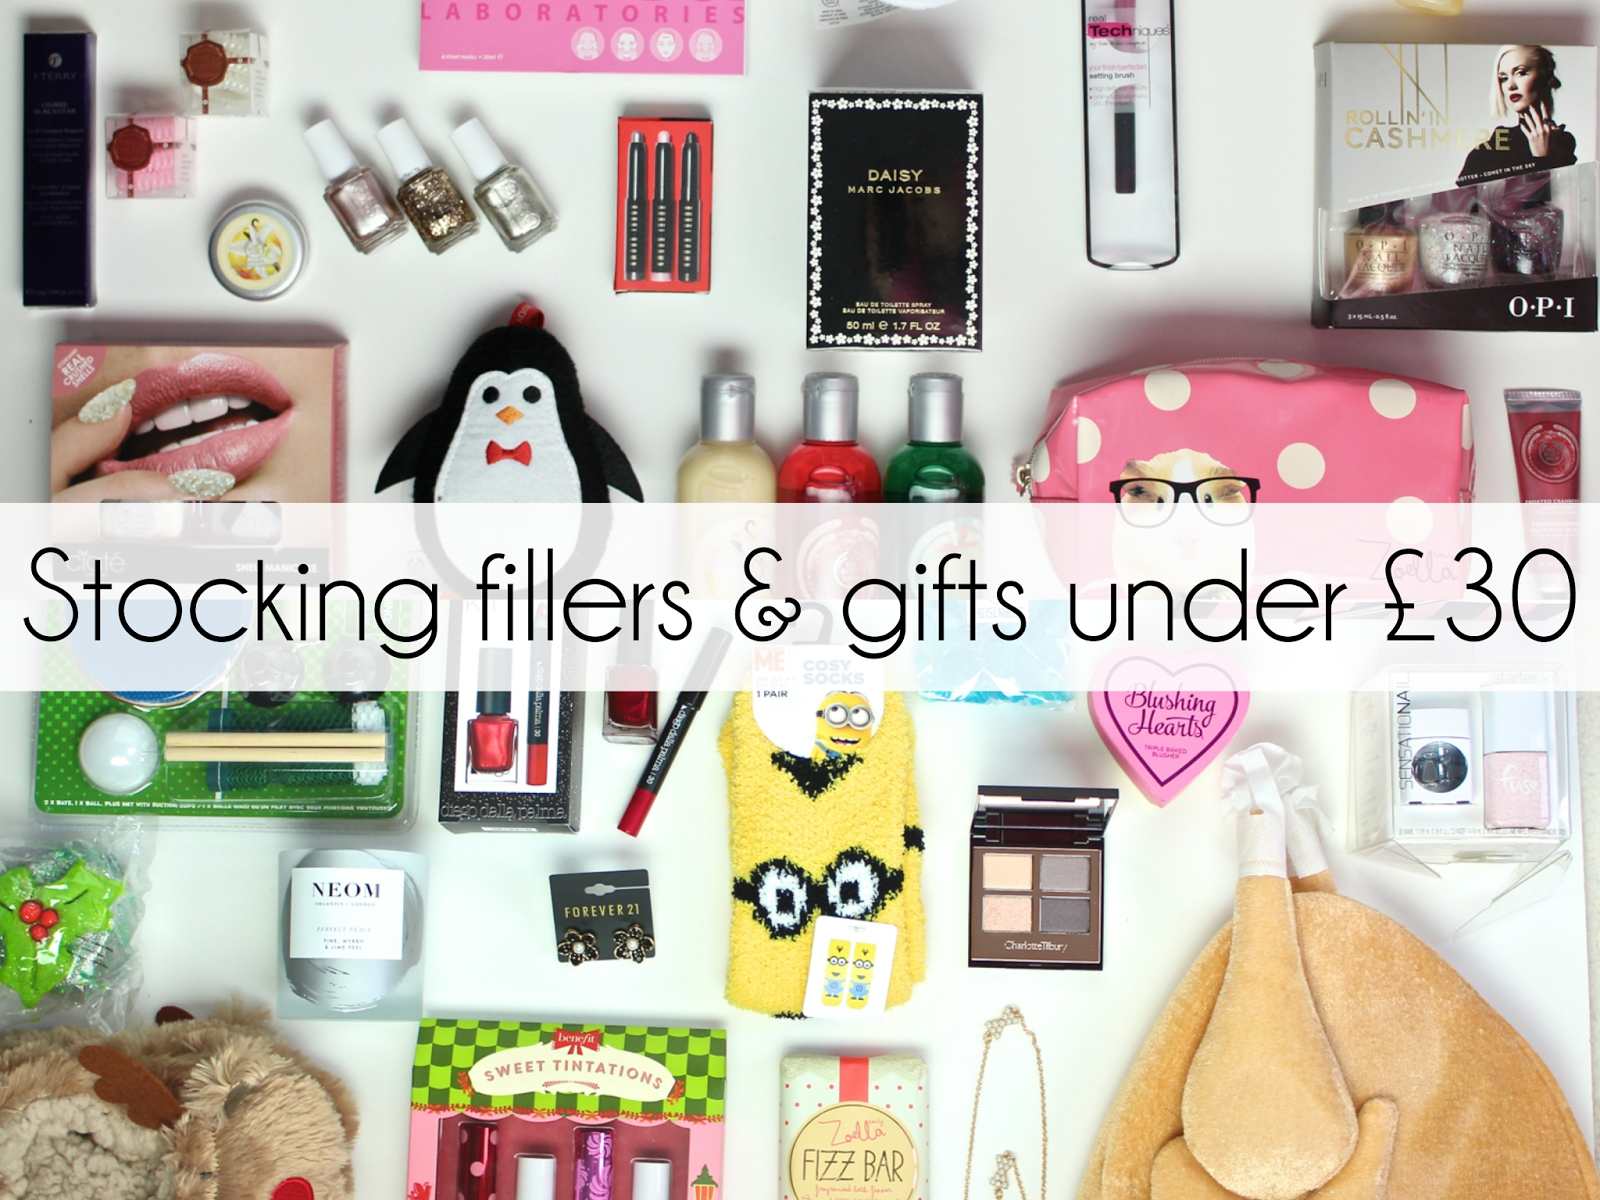 10 Beautiful Gift Ideas For Women 30 christmas gift ideas stocking fillers and gifts under 30 flutter 1